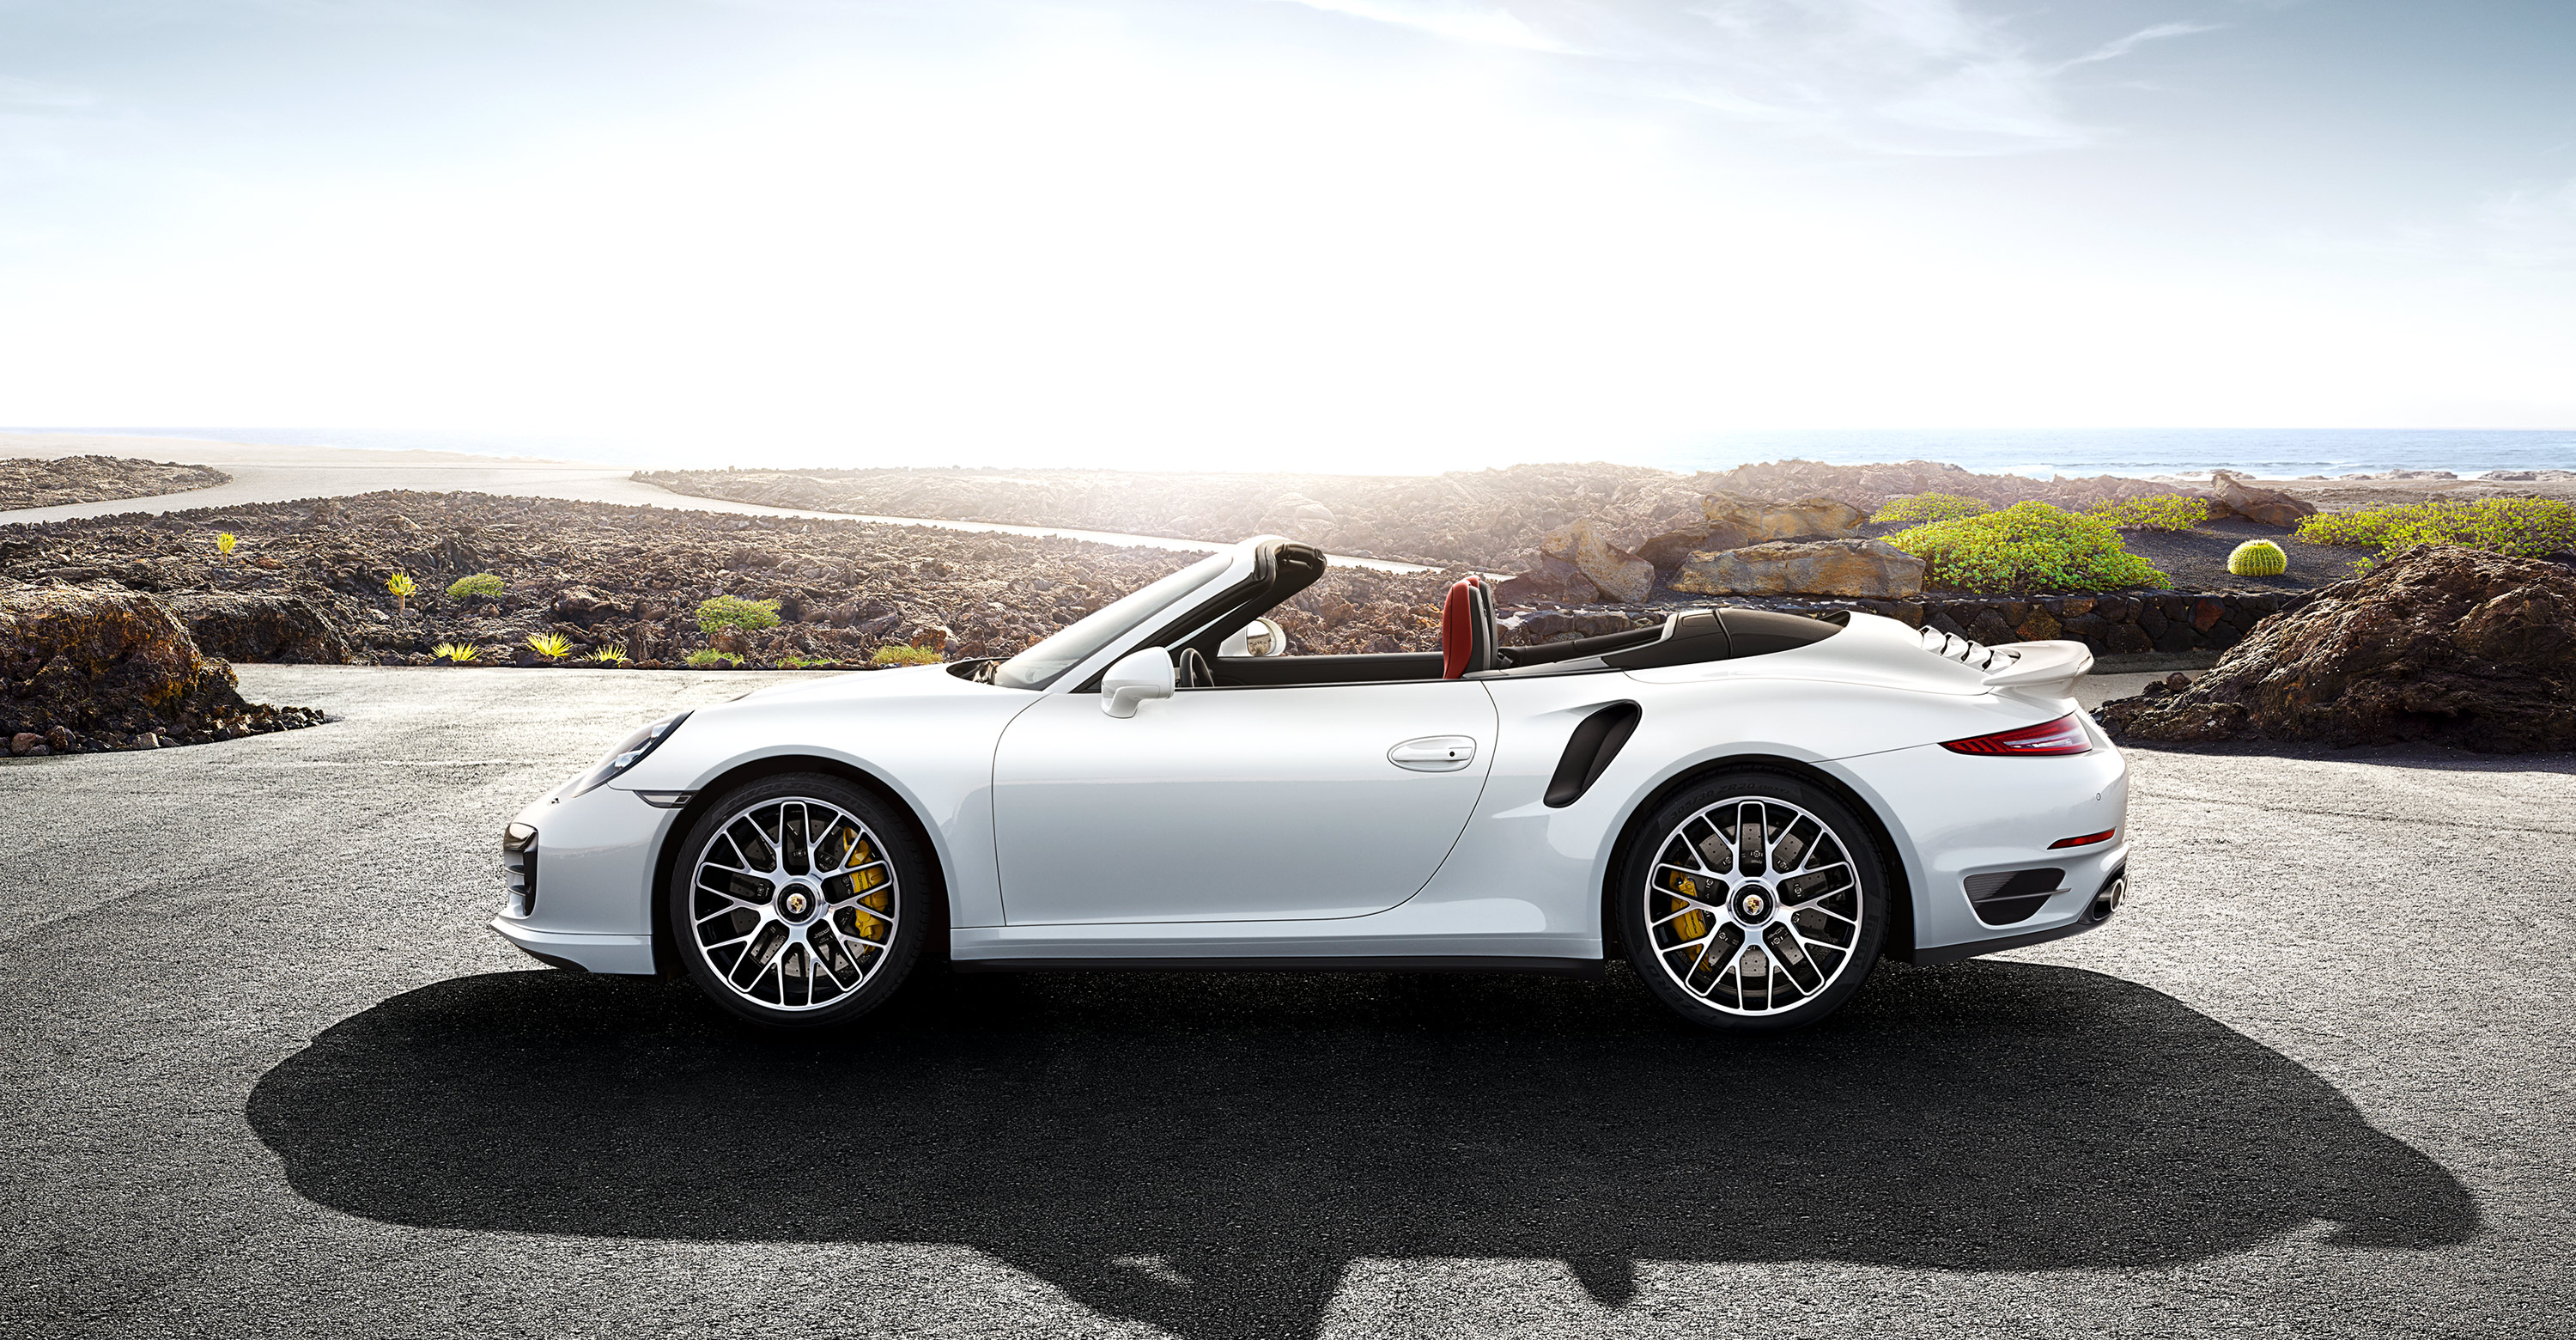 Turbo S Cabriolet H together with Porsche Carrera S additionally Porsche Carrera together with Porsche Carrera S Cabriolet together with Porsche Carrera S C. on 2013 porsche 911 carrera 4s cabriolet